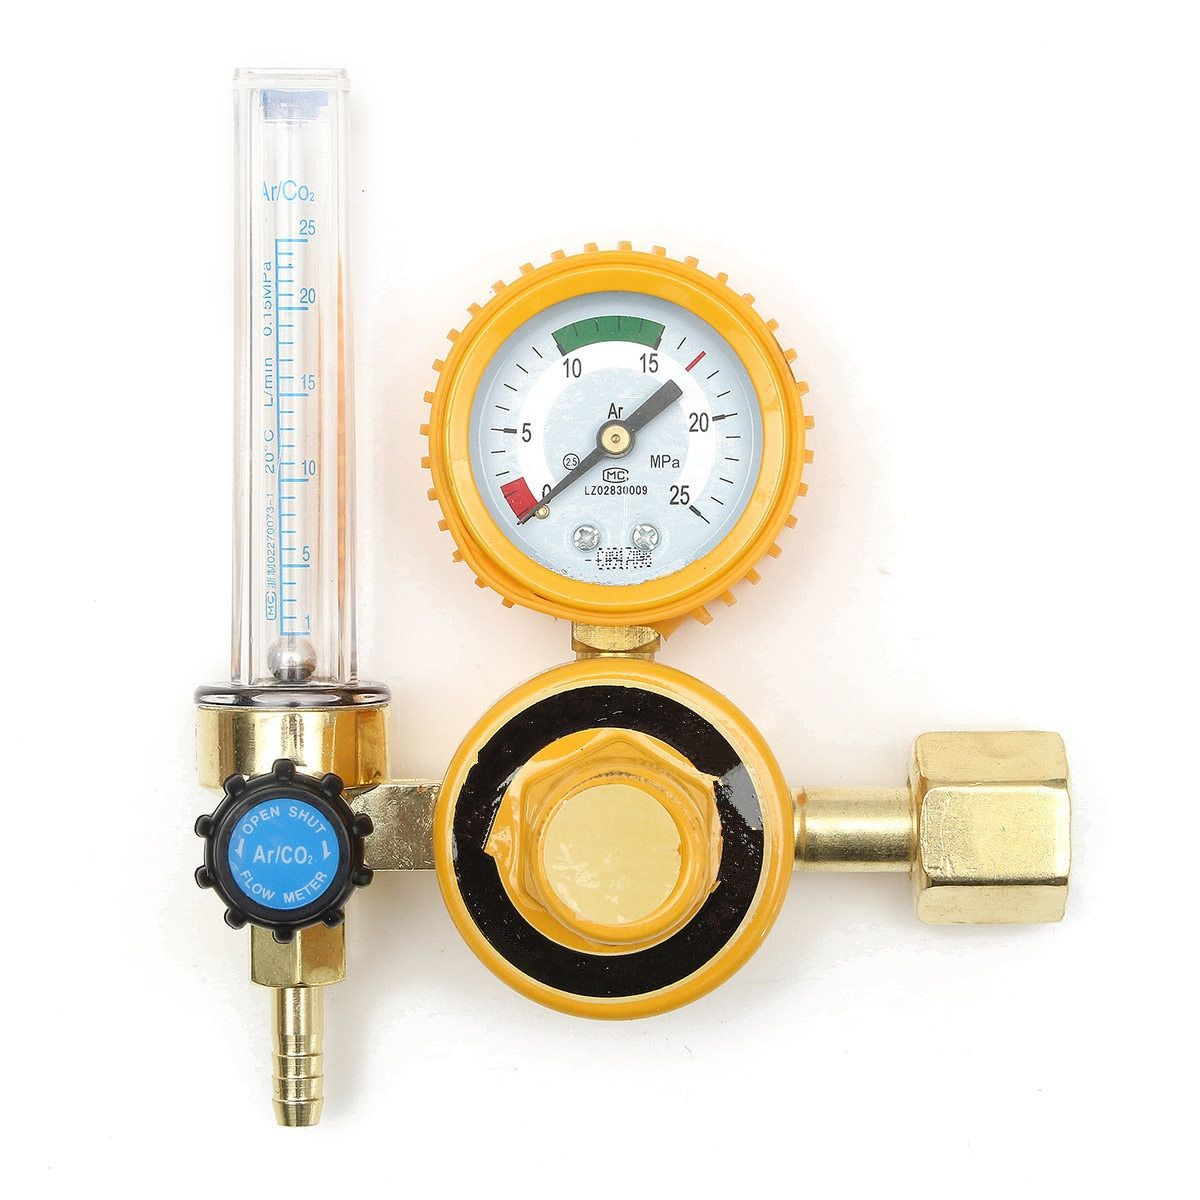 Explosion Proof 0-25Mpa Argon CO2 Mig Tig Flow Meter Gas Regulator Flowmeter Welding Weld Gauge Argon Regulator